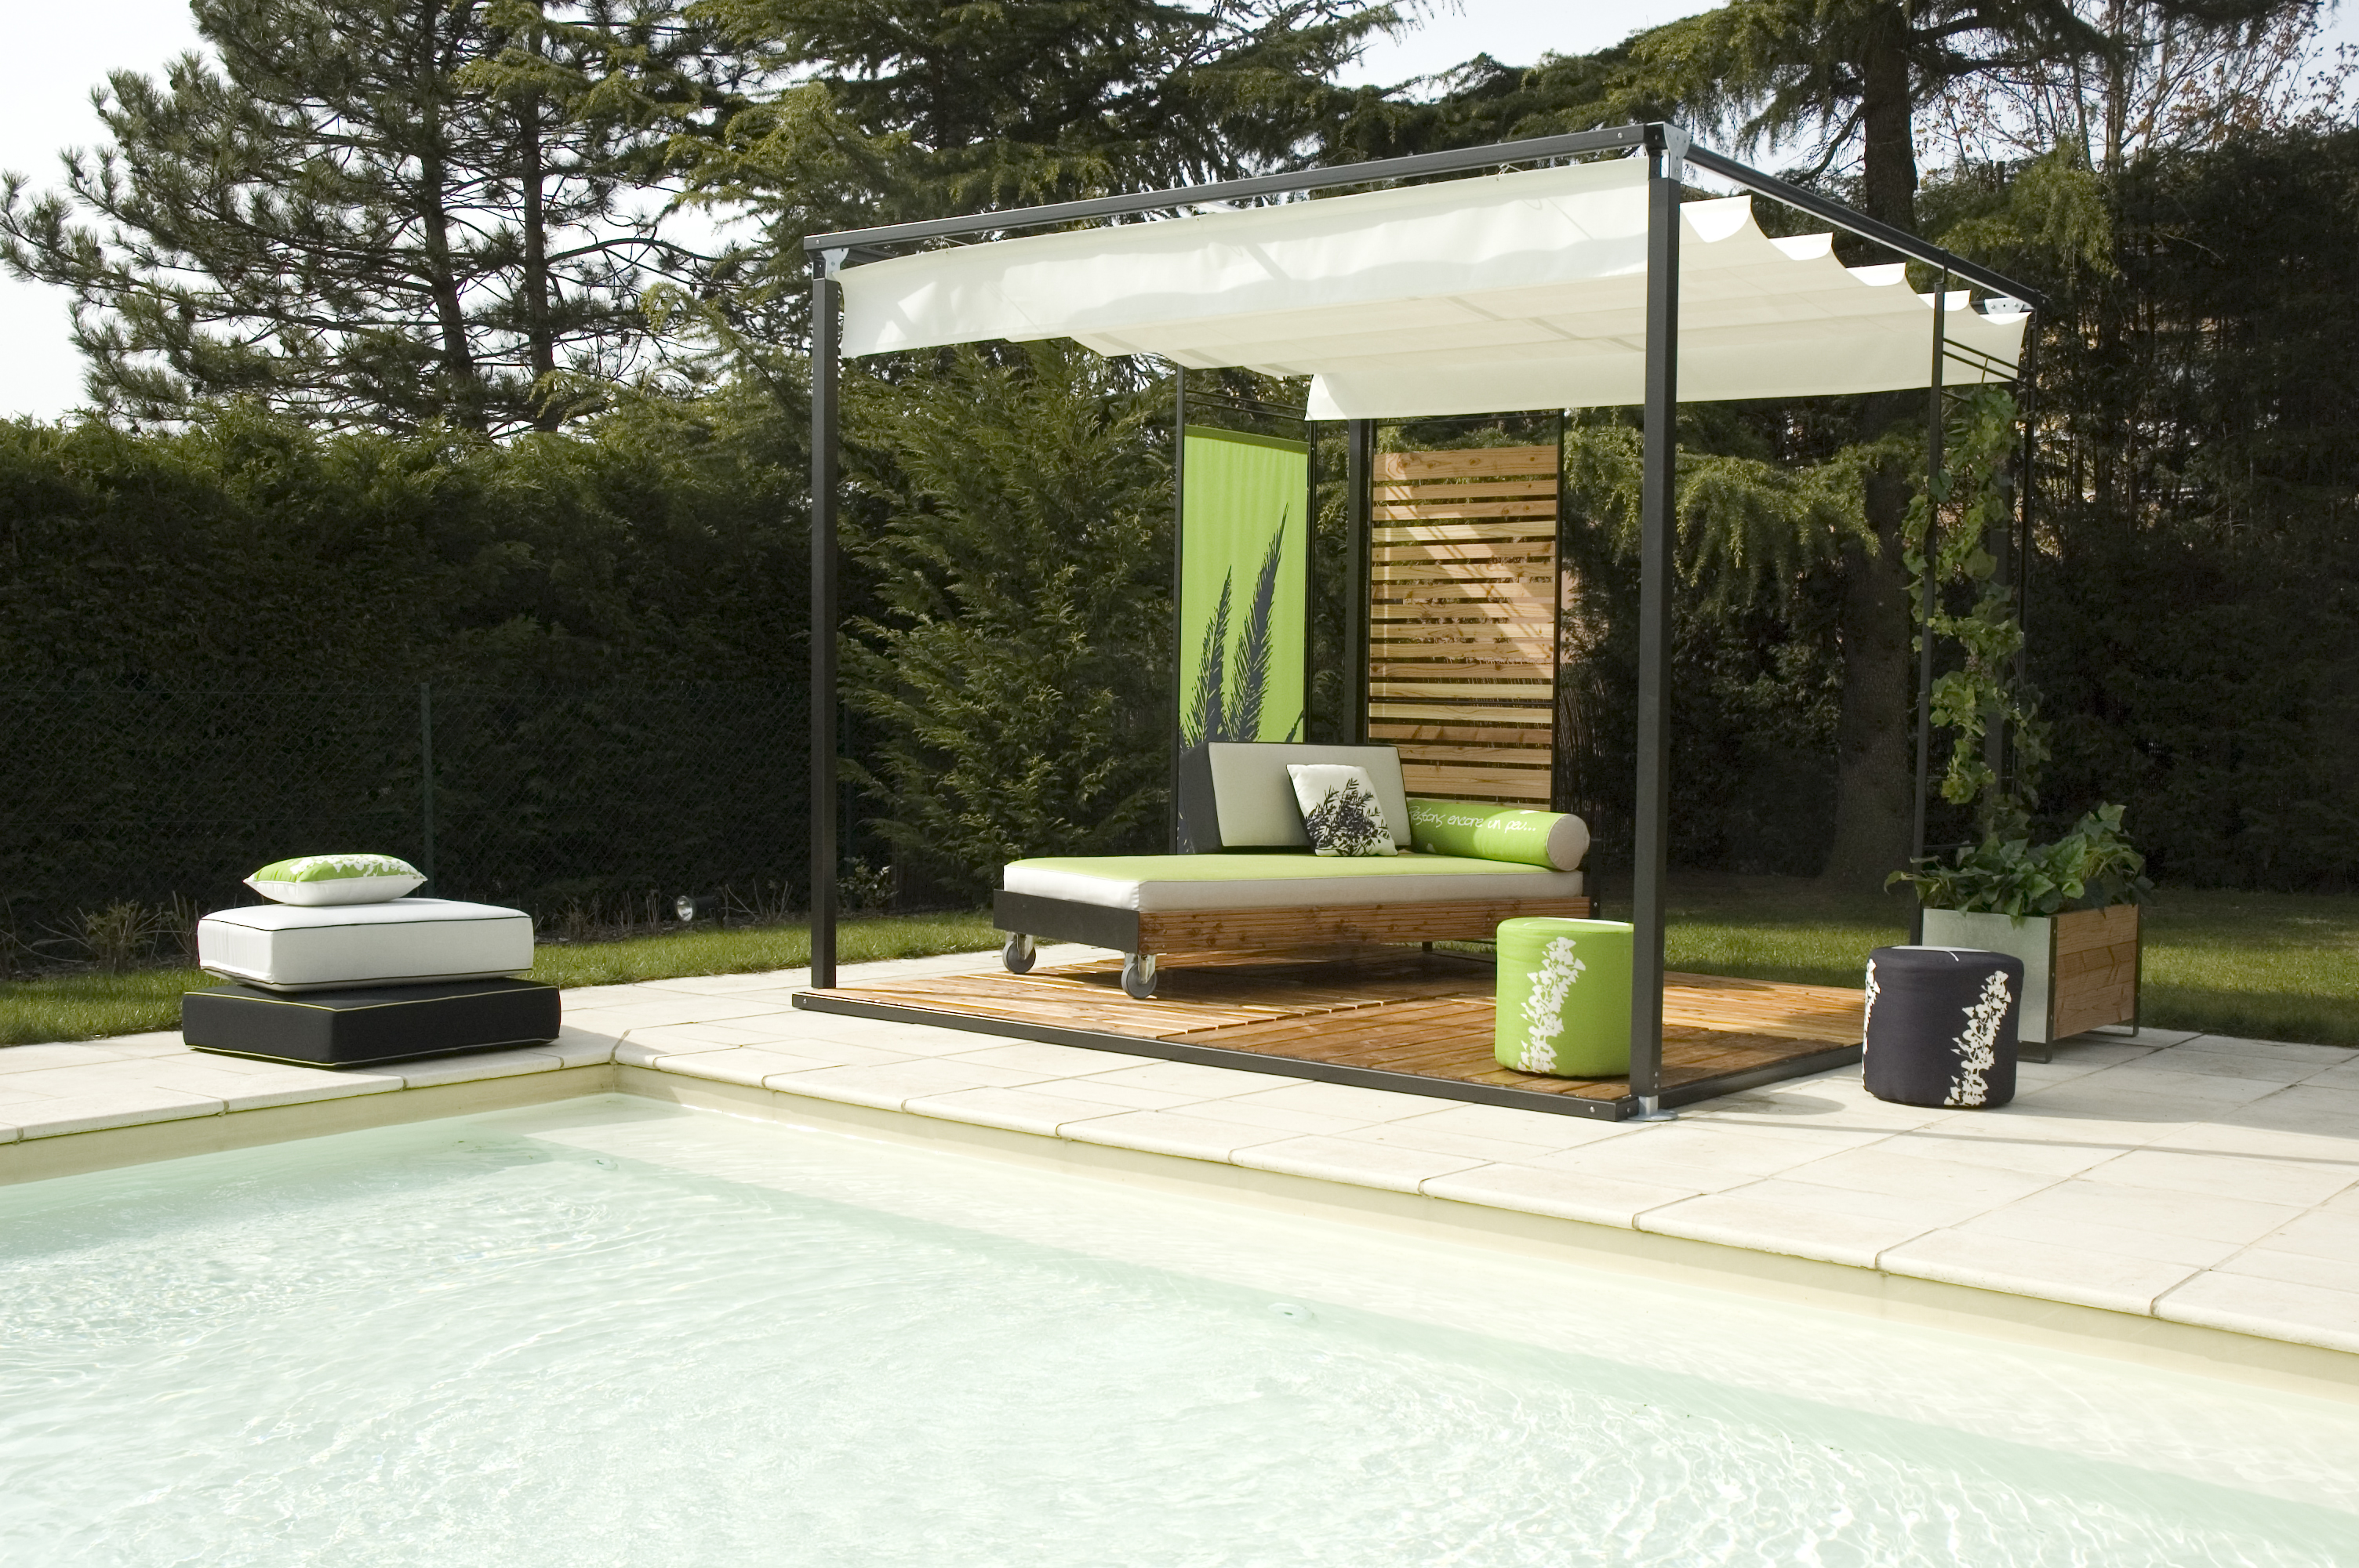 Pergola Originale Of Pergola Acier Sur Mesure L 39 Originale Design Sobre Modularit Totale